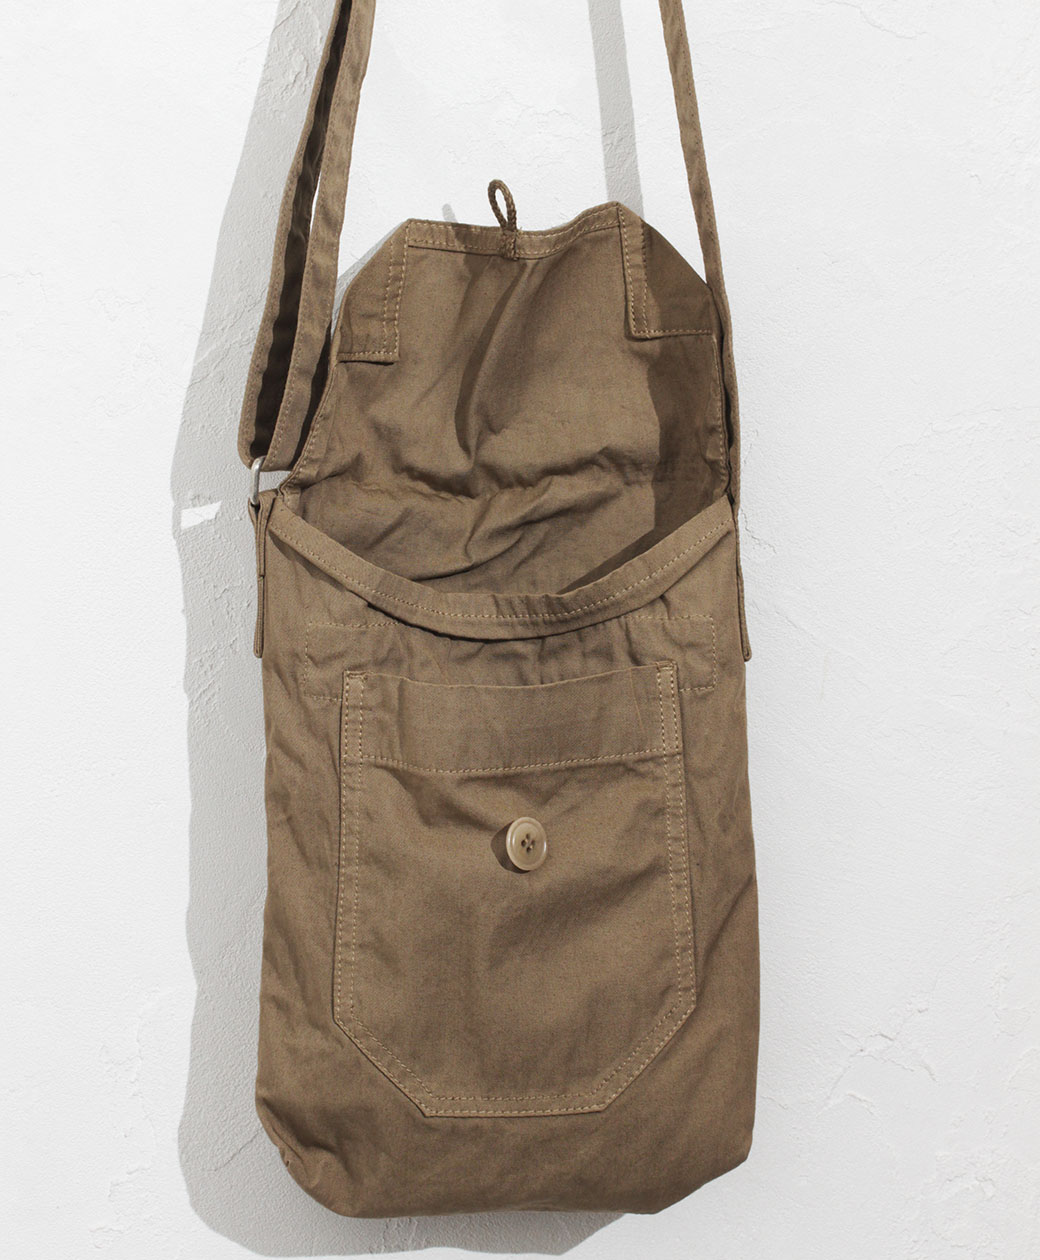 hobo COTTON TWILL COFFEE DYED SHOULDER BAG